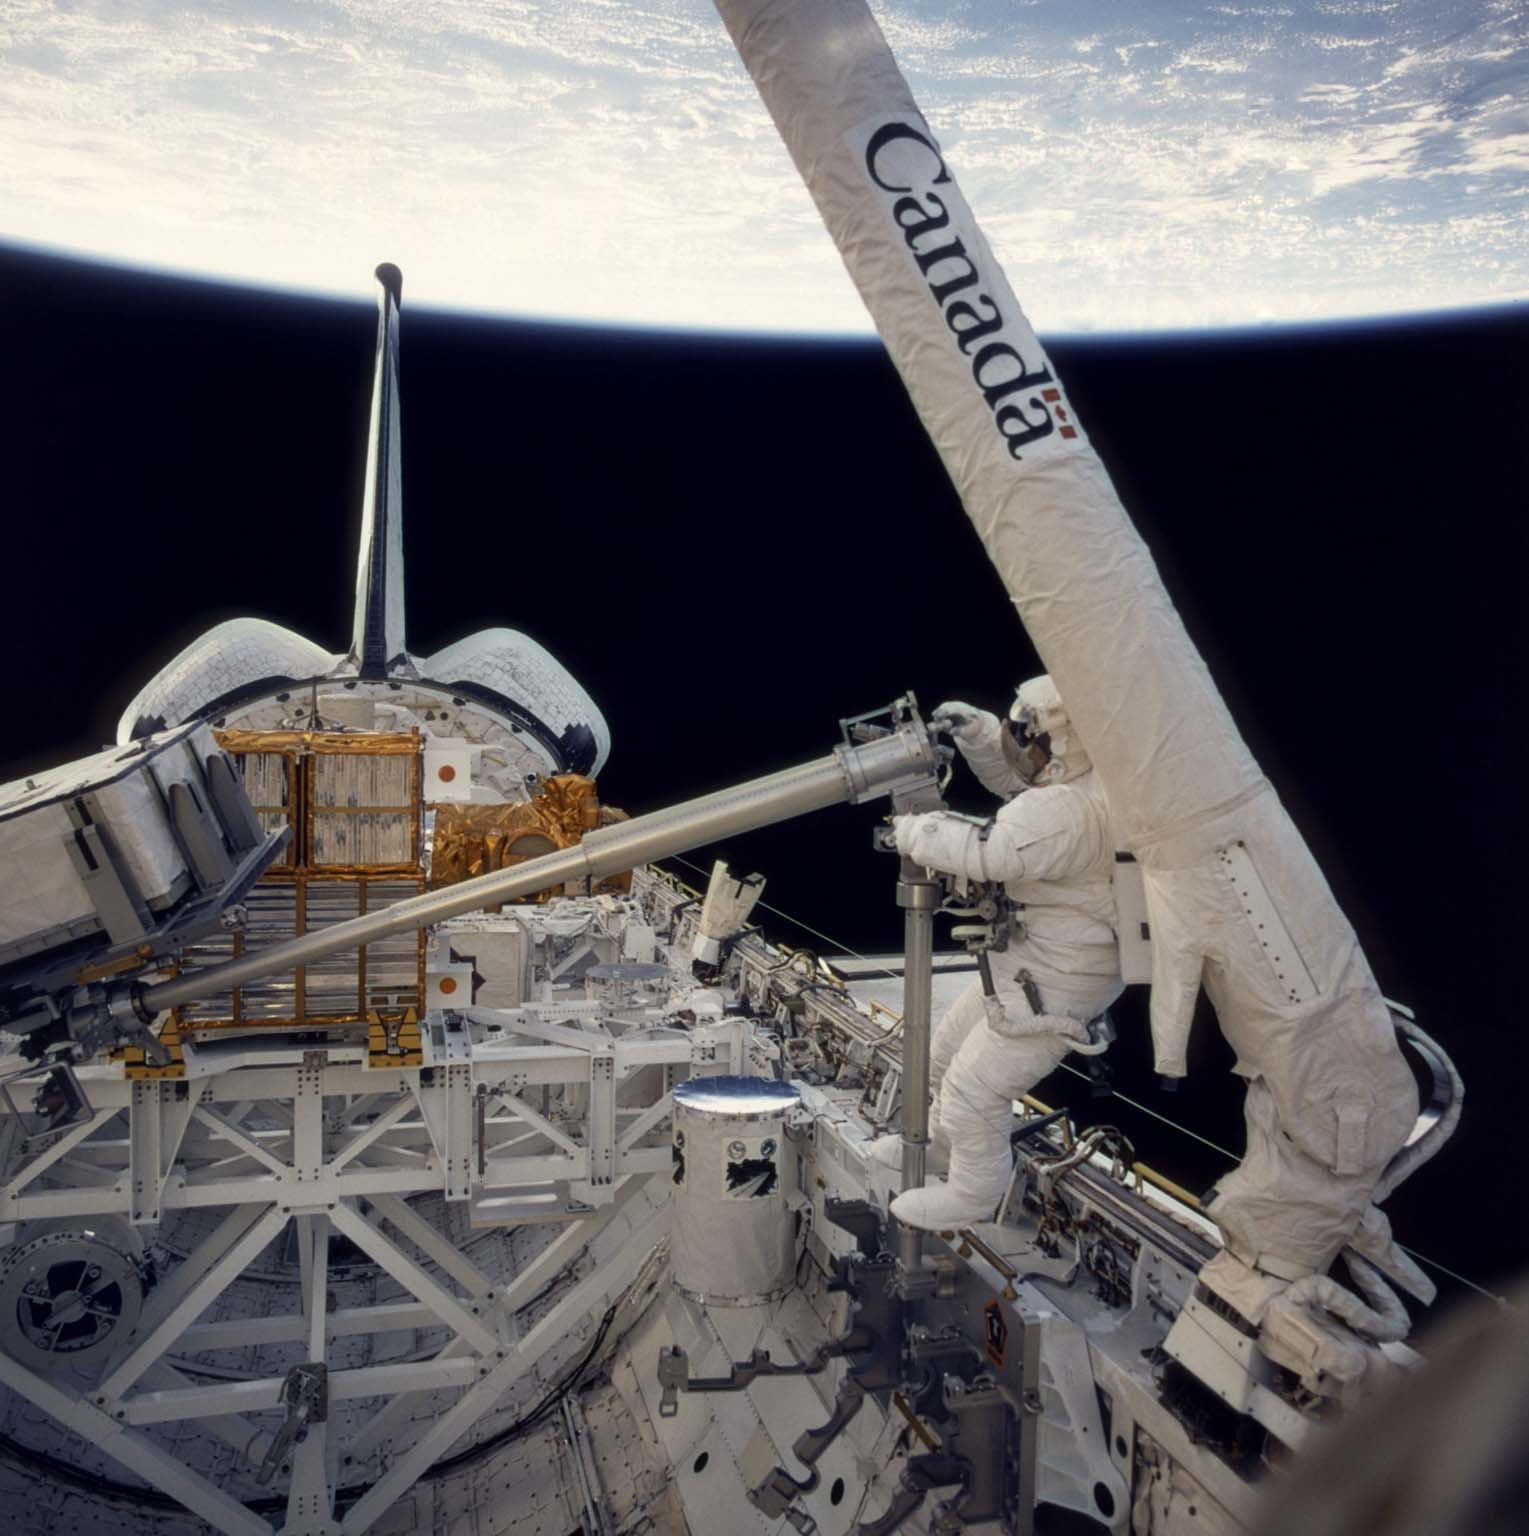 Onboard photo: Astronauts at work